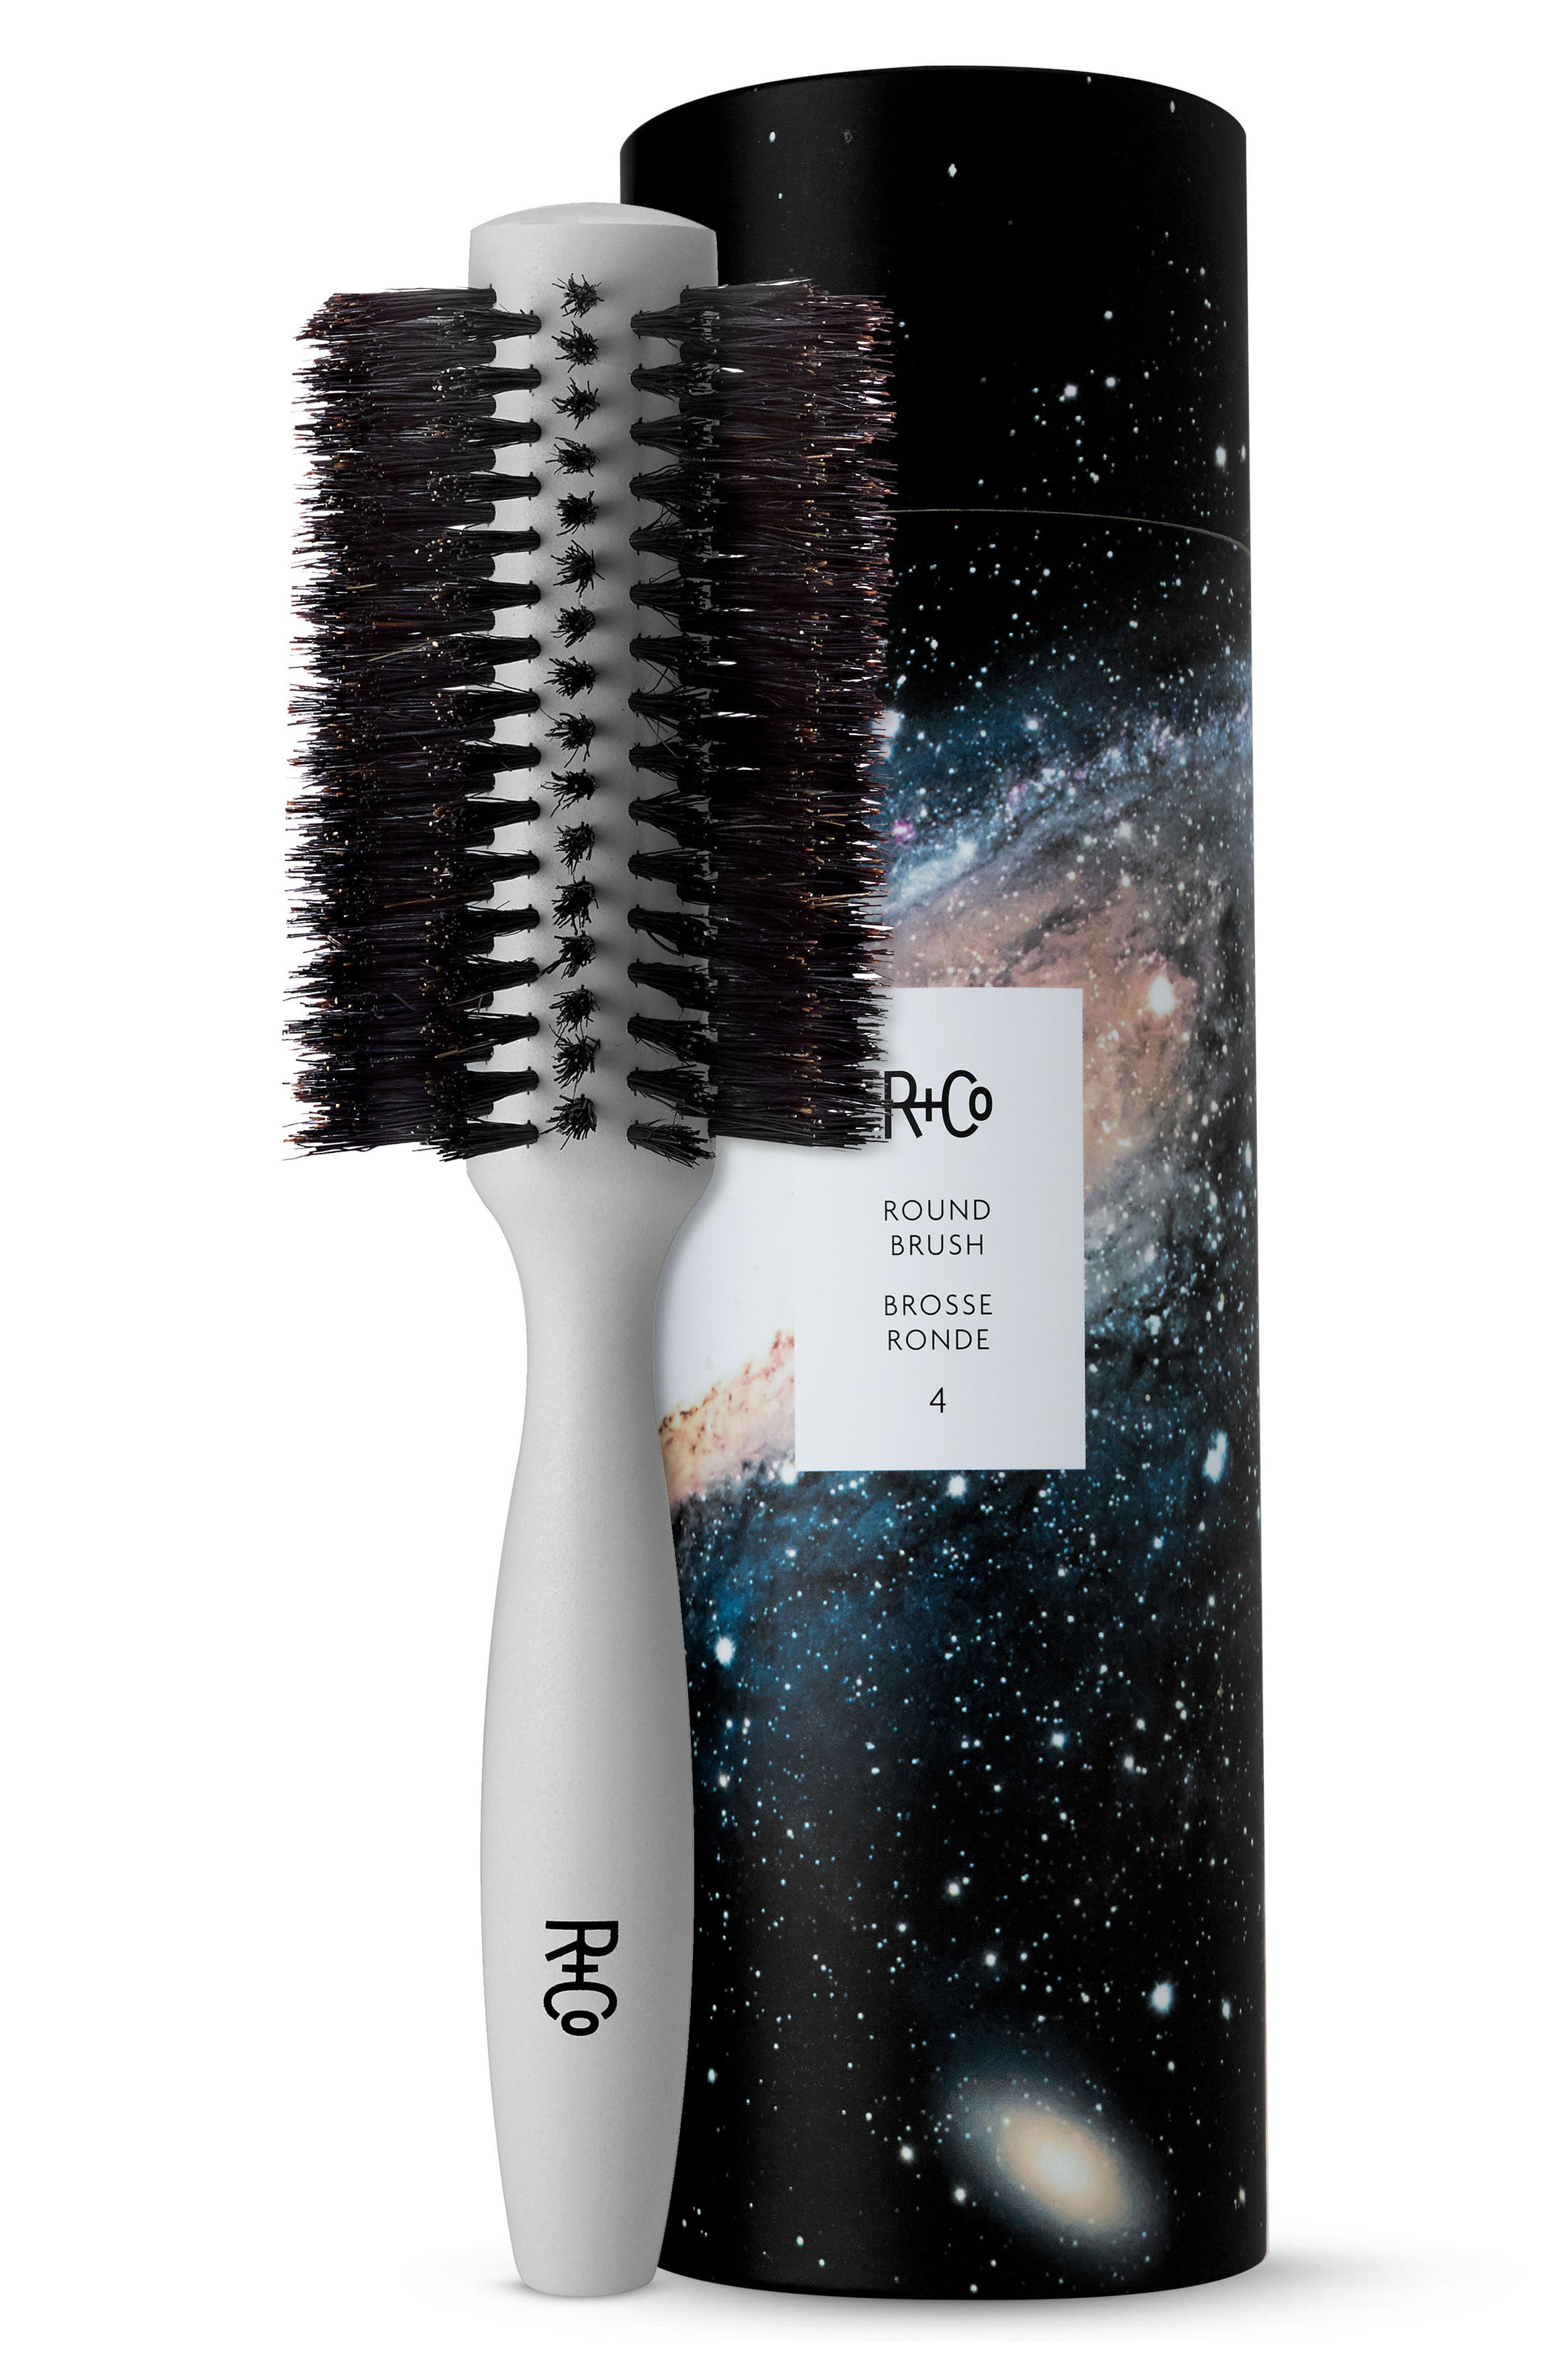 SPACE.NK.apothecary R+Co Large Round Brush 4,                             Main thumbnail 1, color,                             000